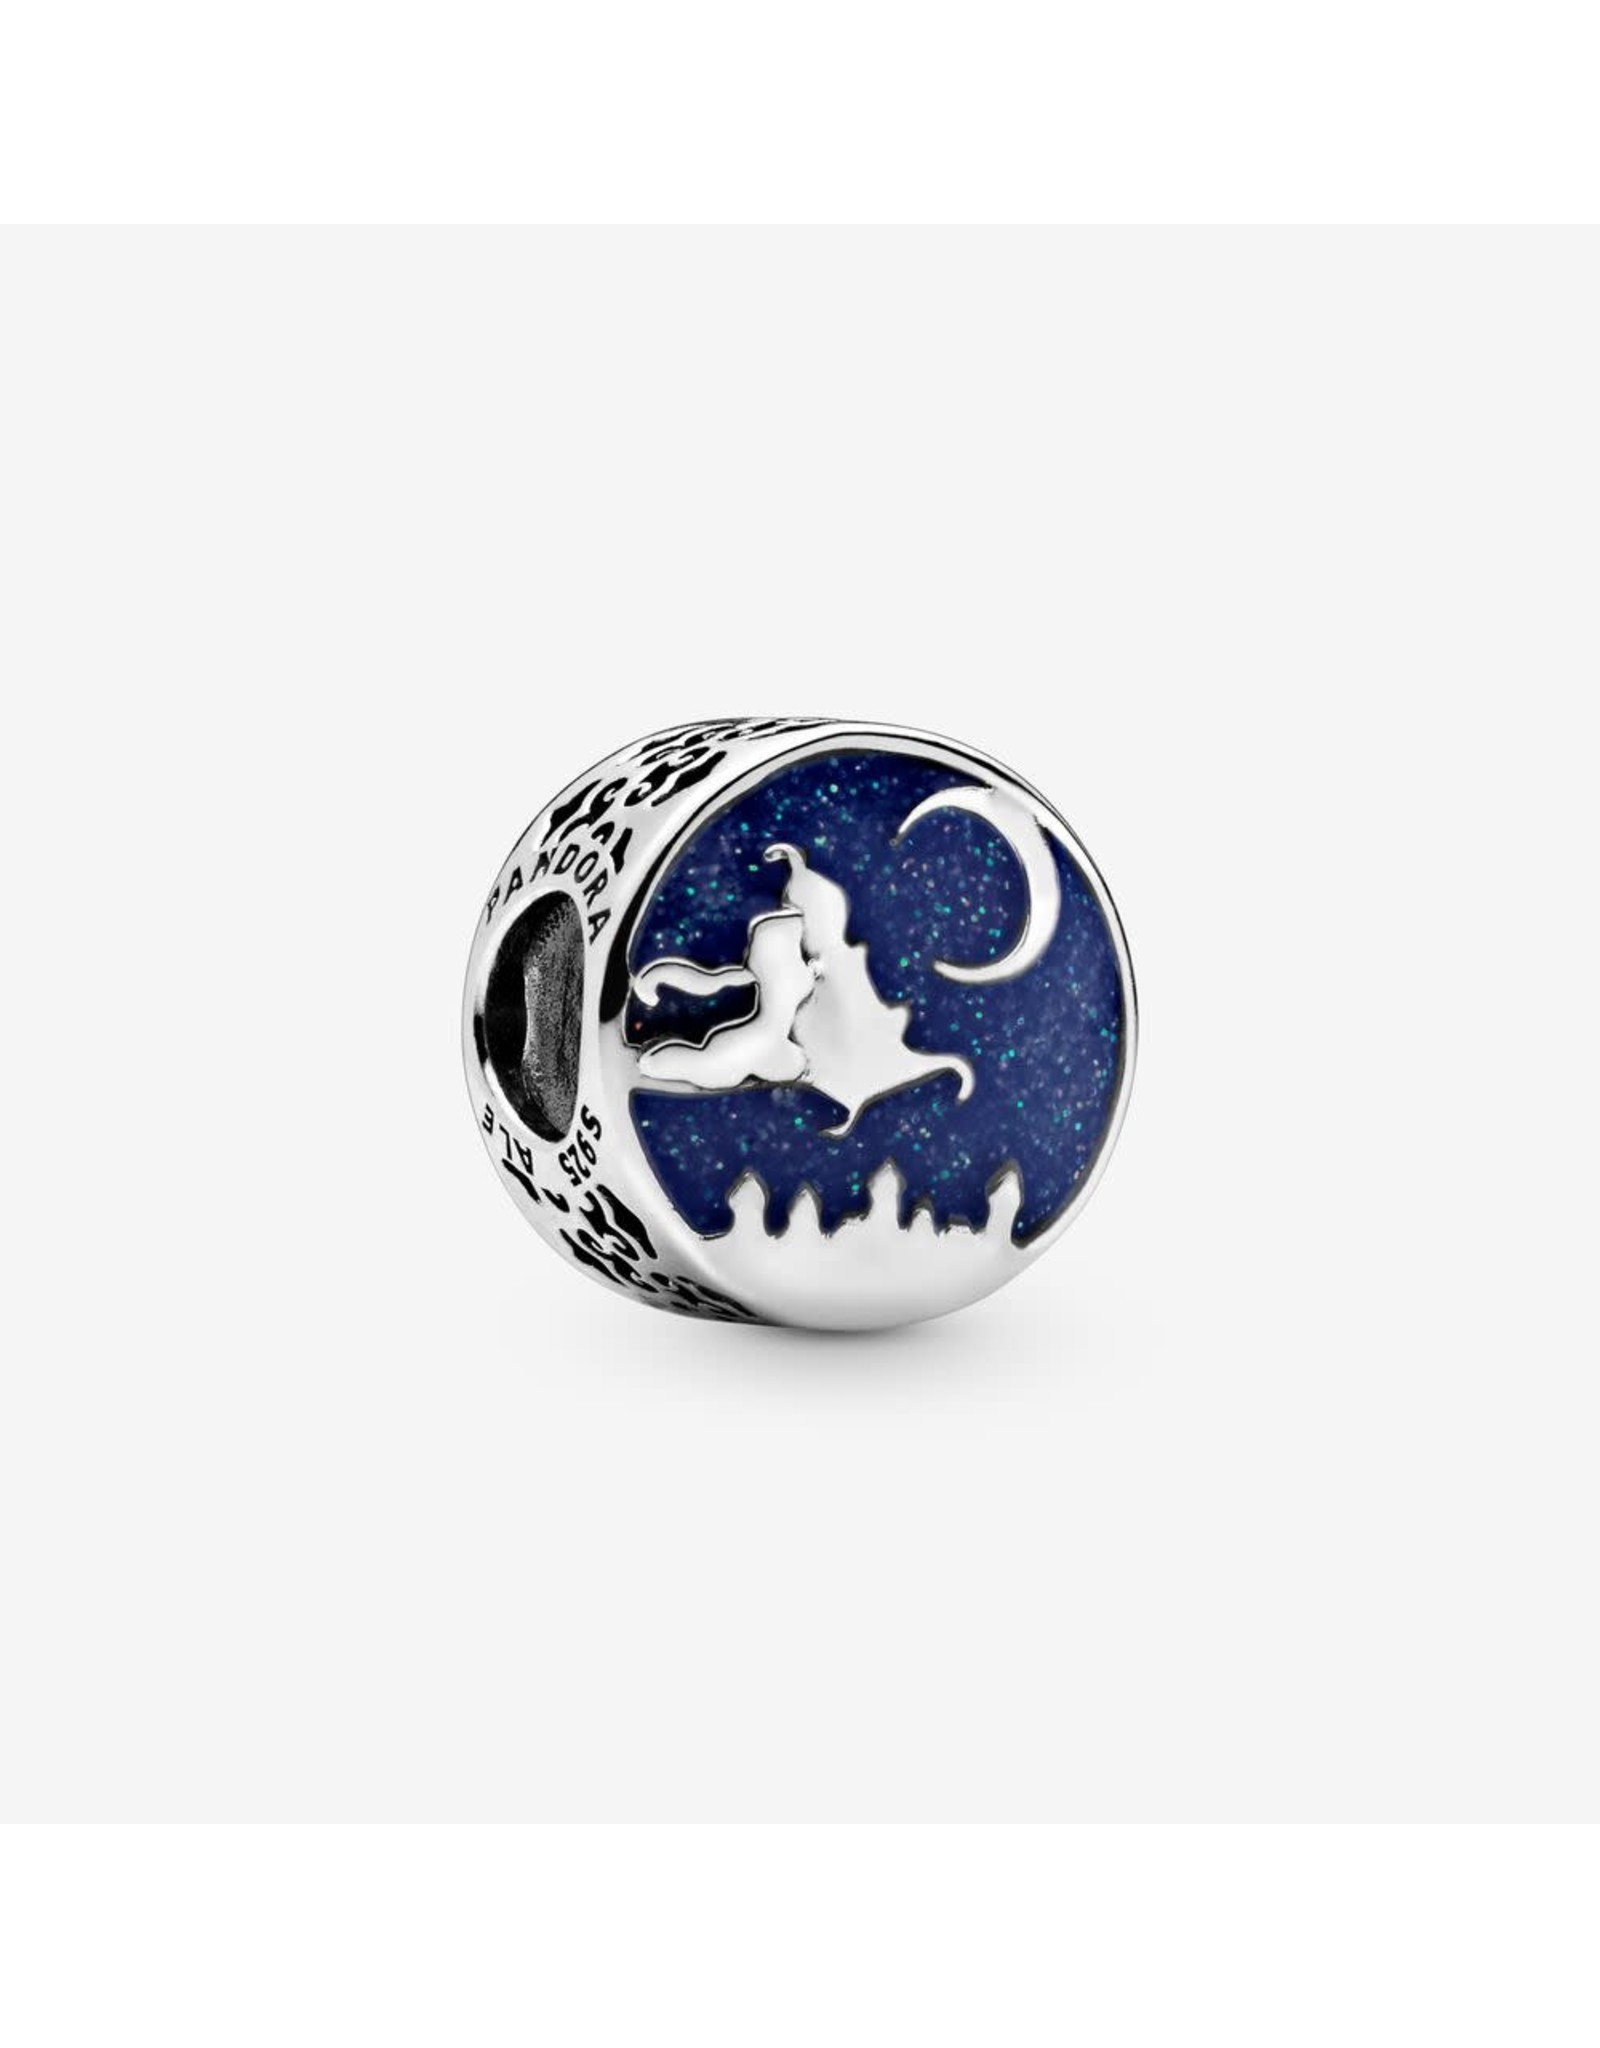 Pandora Pandora Charm, Disney, Magic Carpet Ride